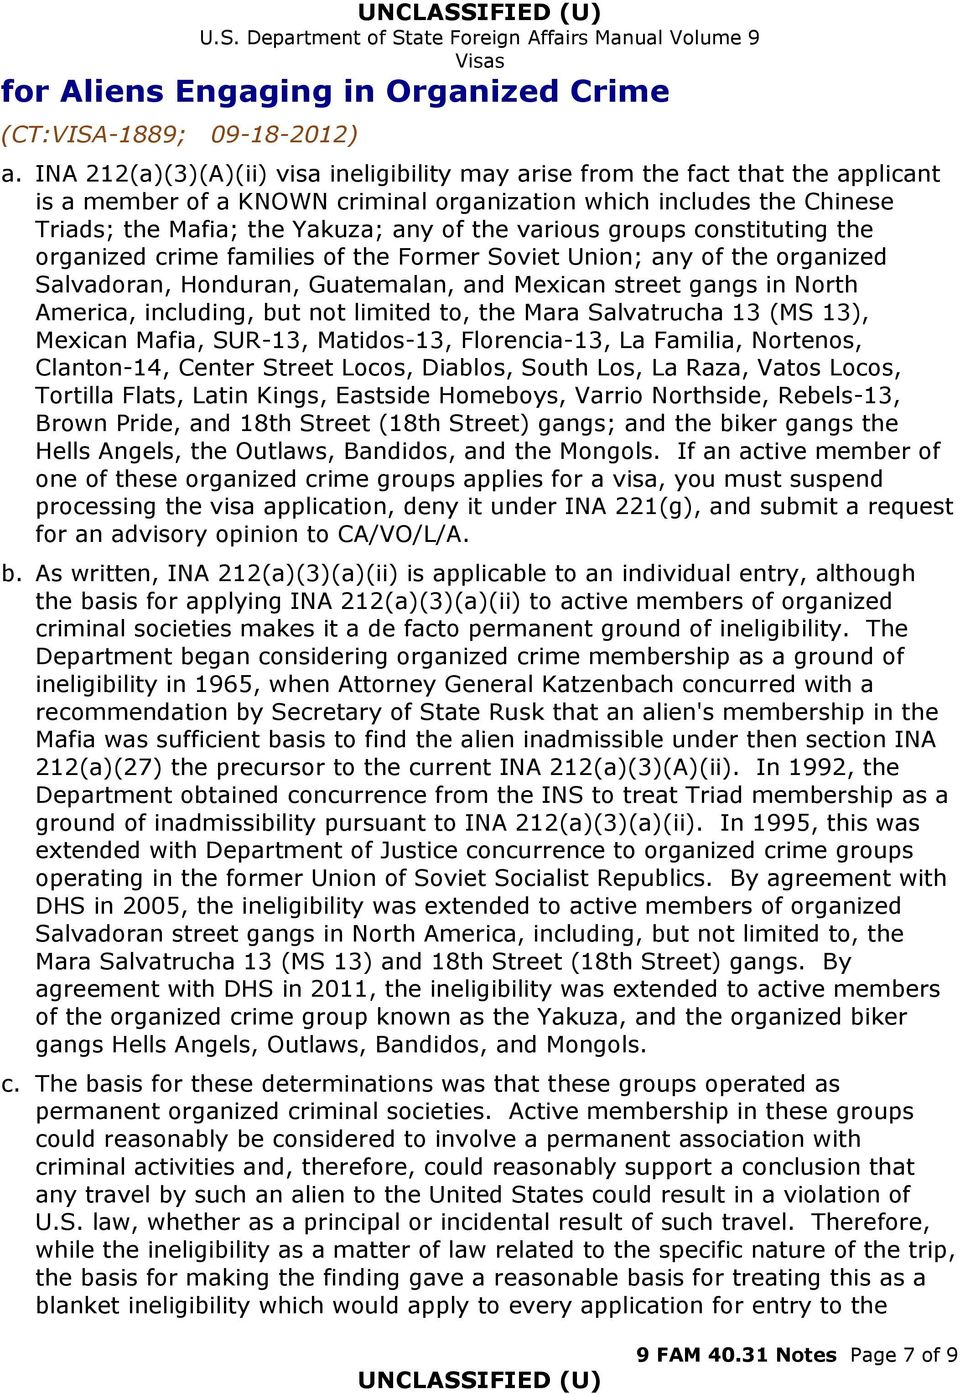 various groups constituting the organized crime families of the Former Soviet Union; any of the organized Salvadoran, Honduran, Guatemalan, and Mexican street gangs in North America, including, but